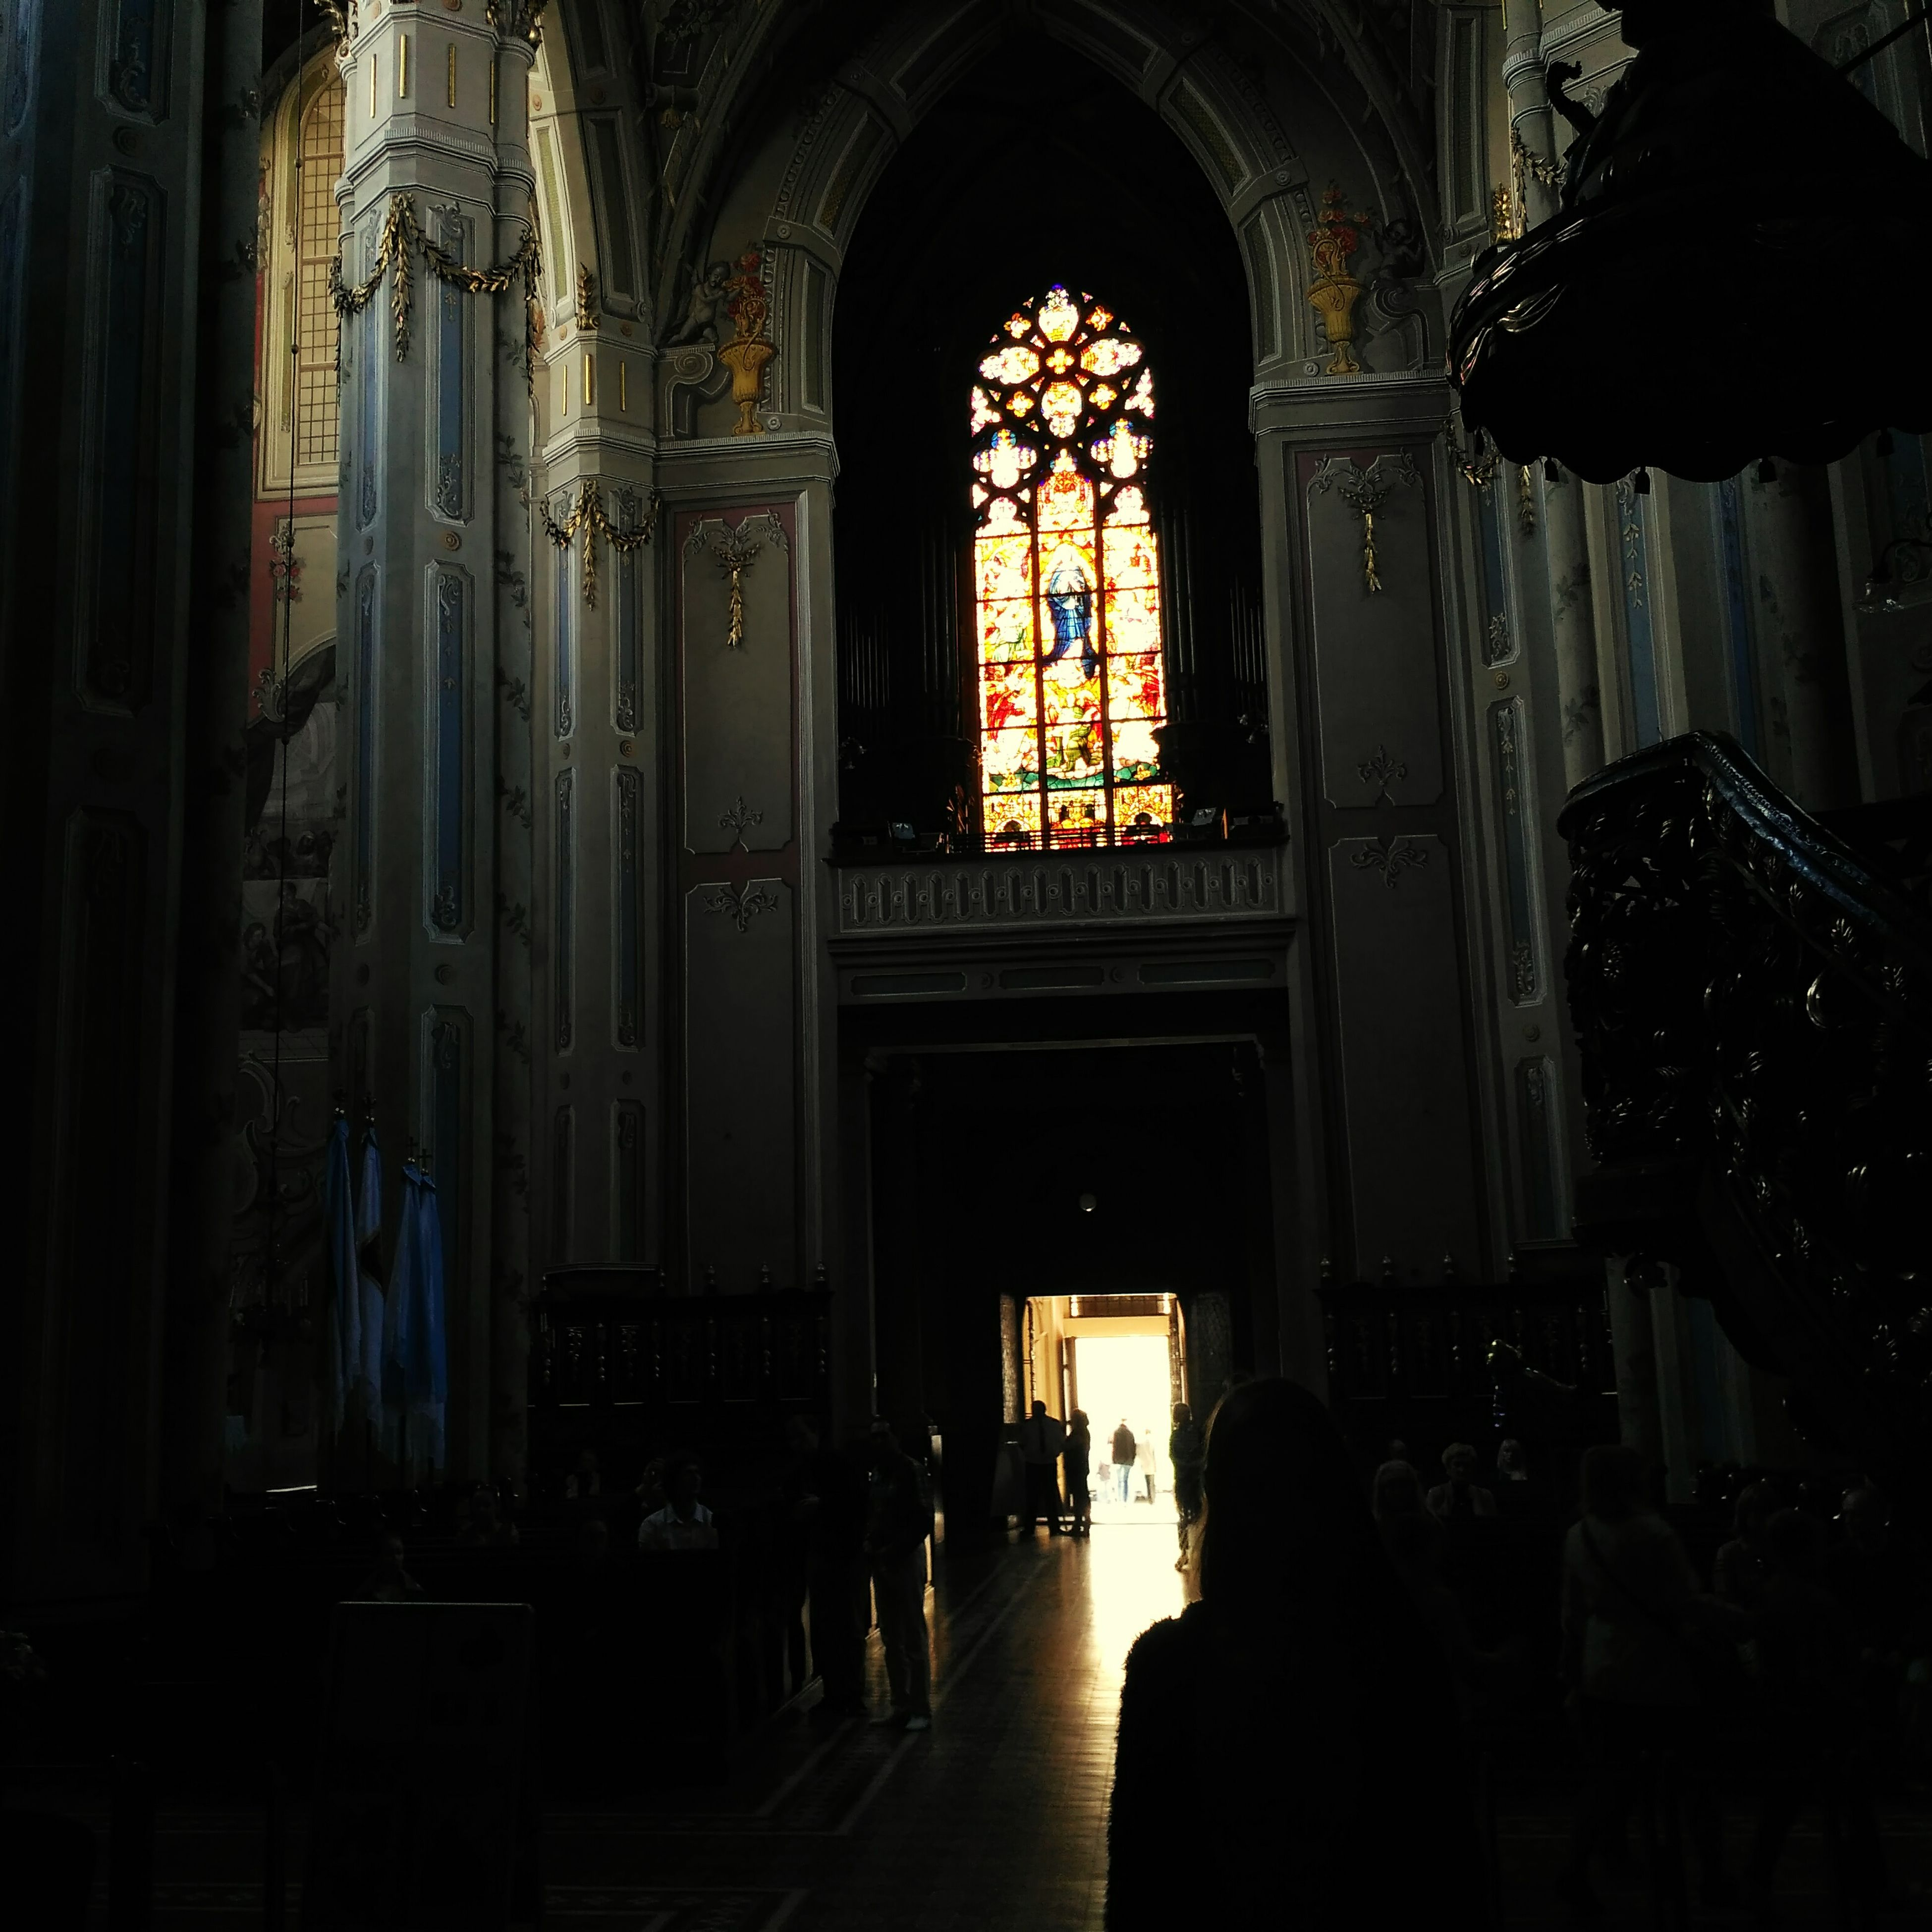 indoors, place of worship, religion, church, spirituality, architecture, built structure, arch, window, cathedral, illuminated, interior, curtain, dark, stained glass, no people, history, lighting equipment